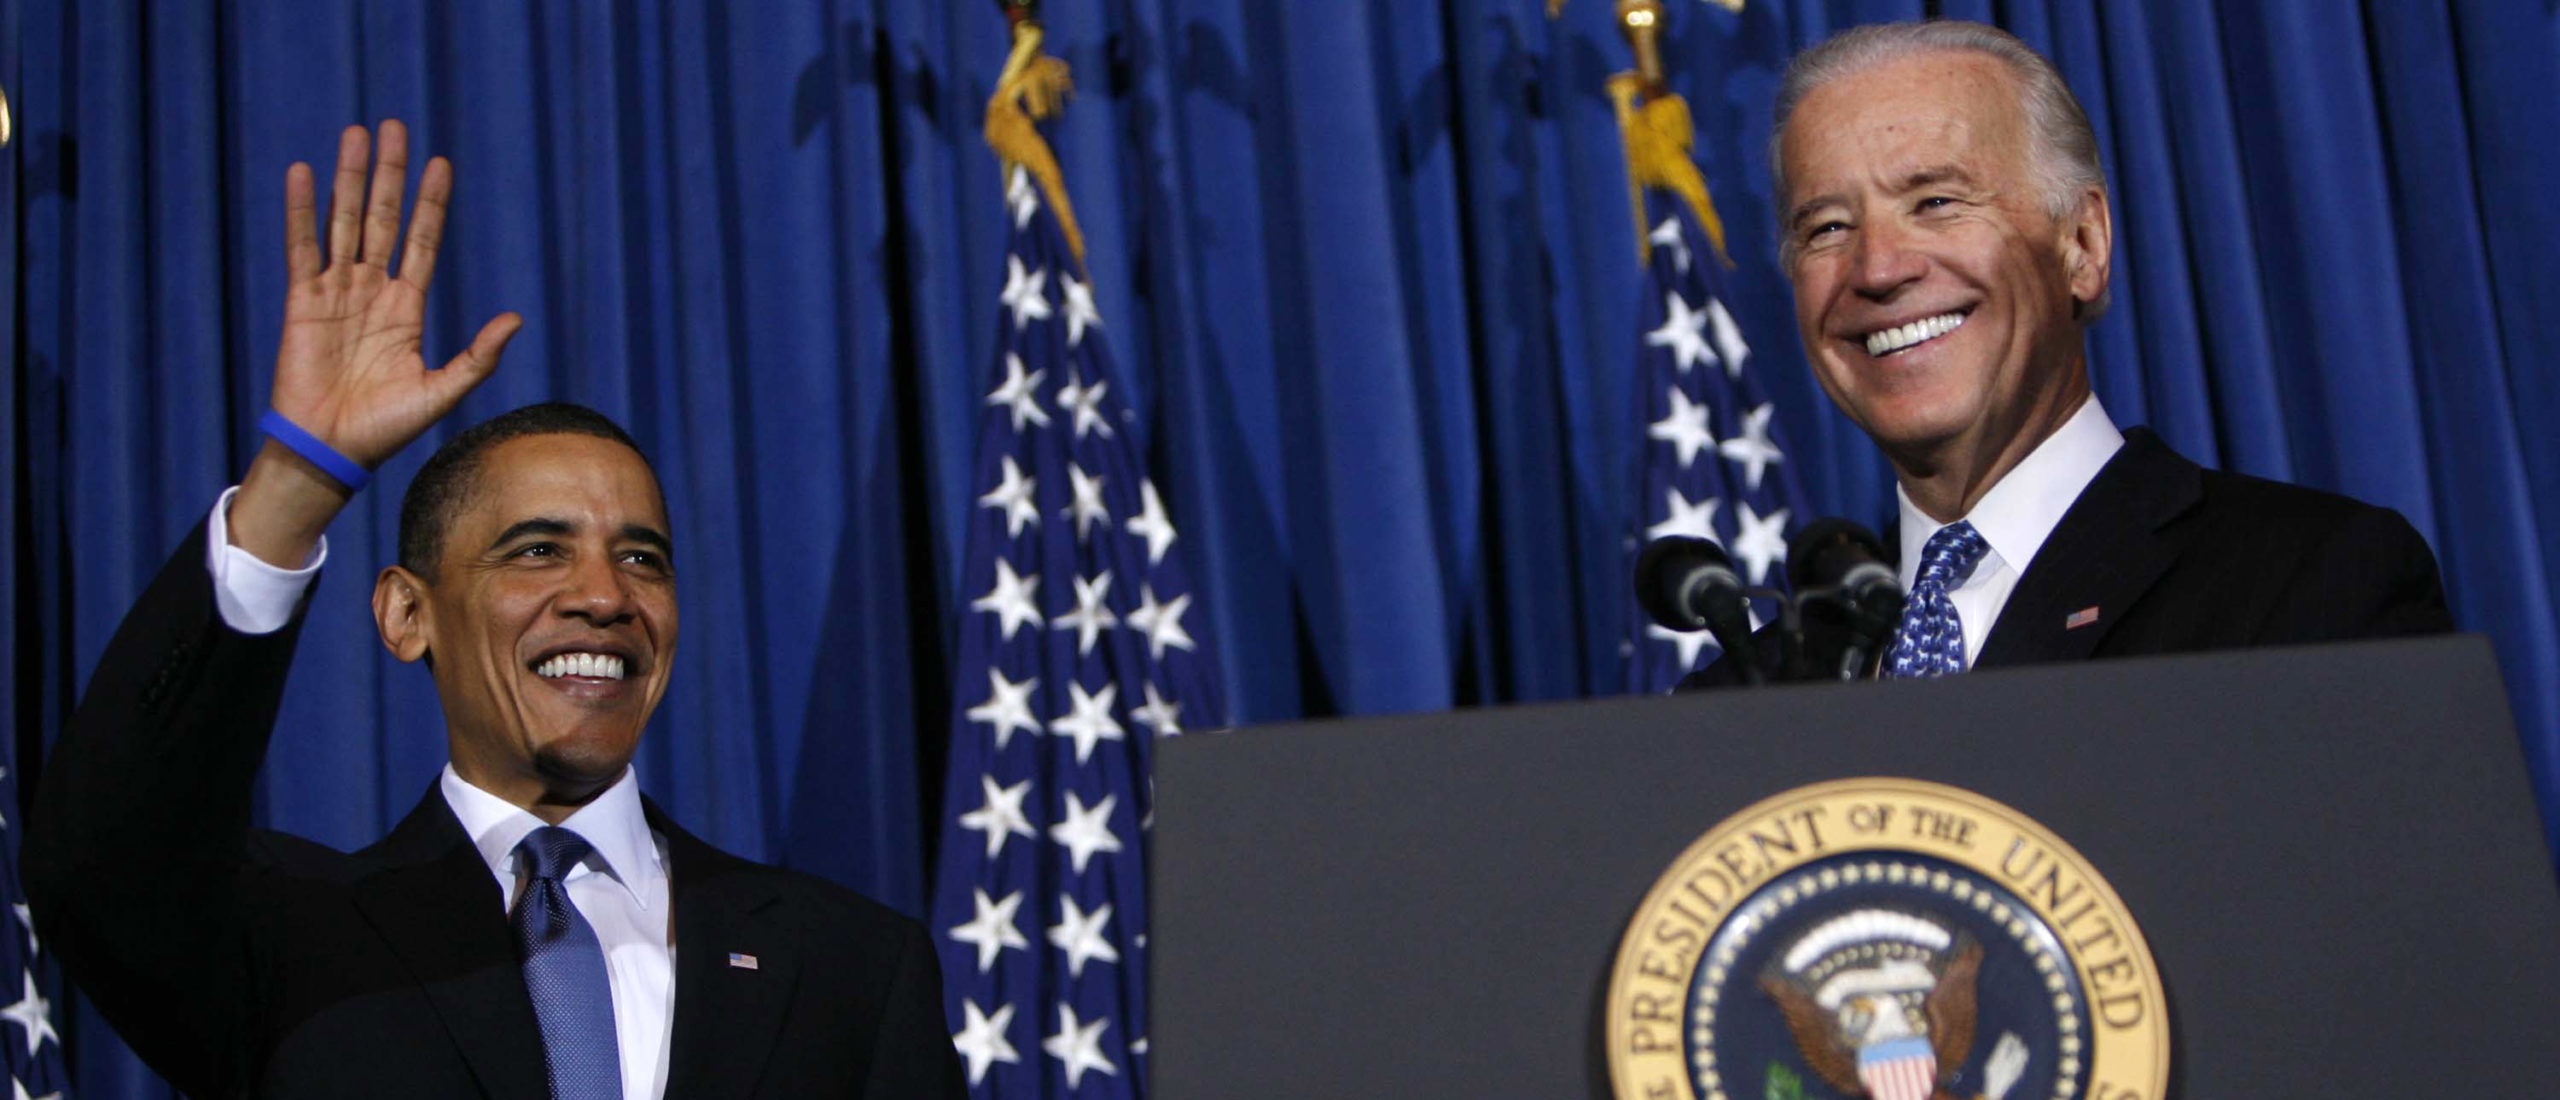 President Barack Obama and Vice President Joe Biden smile and wave at a rally celebrating the final passage of the Patient Protection and Affordable Care Act at the Department of the Interior March 23, 2010 in Washington, DC. (Dennis Brack-Pool/Getty Images)